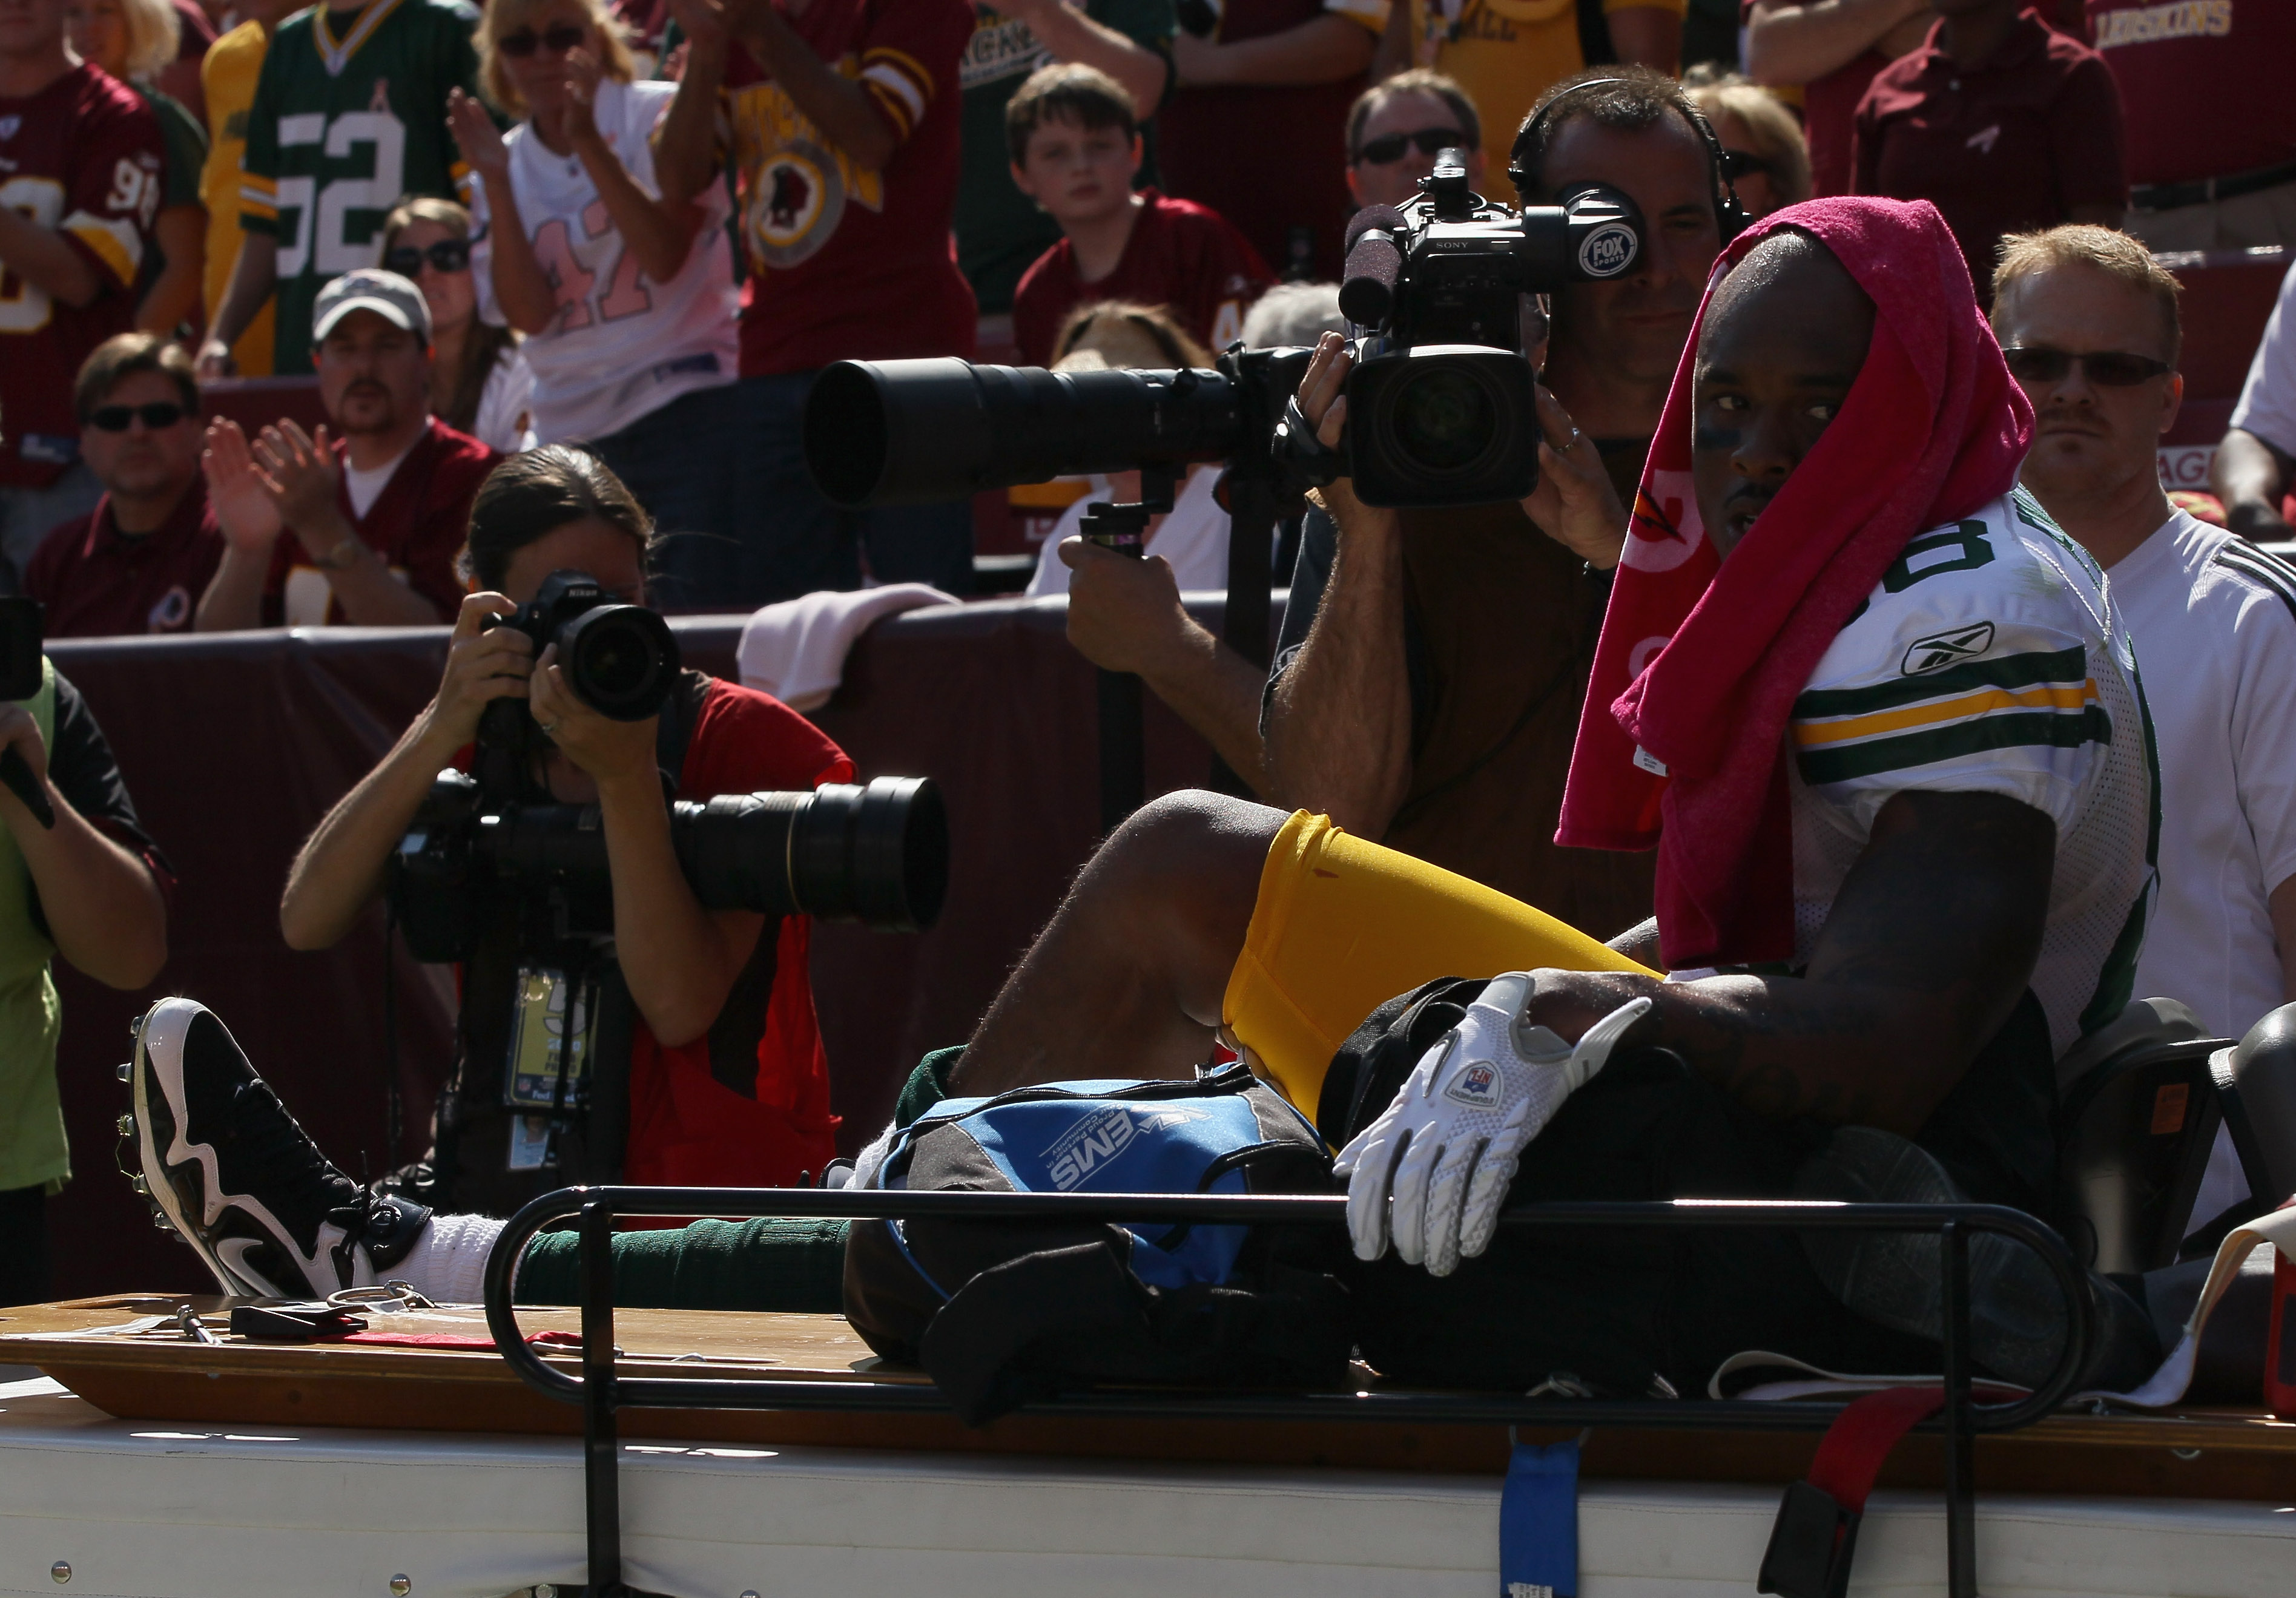 LANDOVER, MD - OCTOBER 10:  Tight end Jermichael Finley #88 of the Green Bay Packers leaves the game on a cart after injuring his knee against the Washington Redskins at FedExField on October 10, 2010 in Landover, Maryland. The Redskins won the game in ov